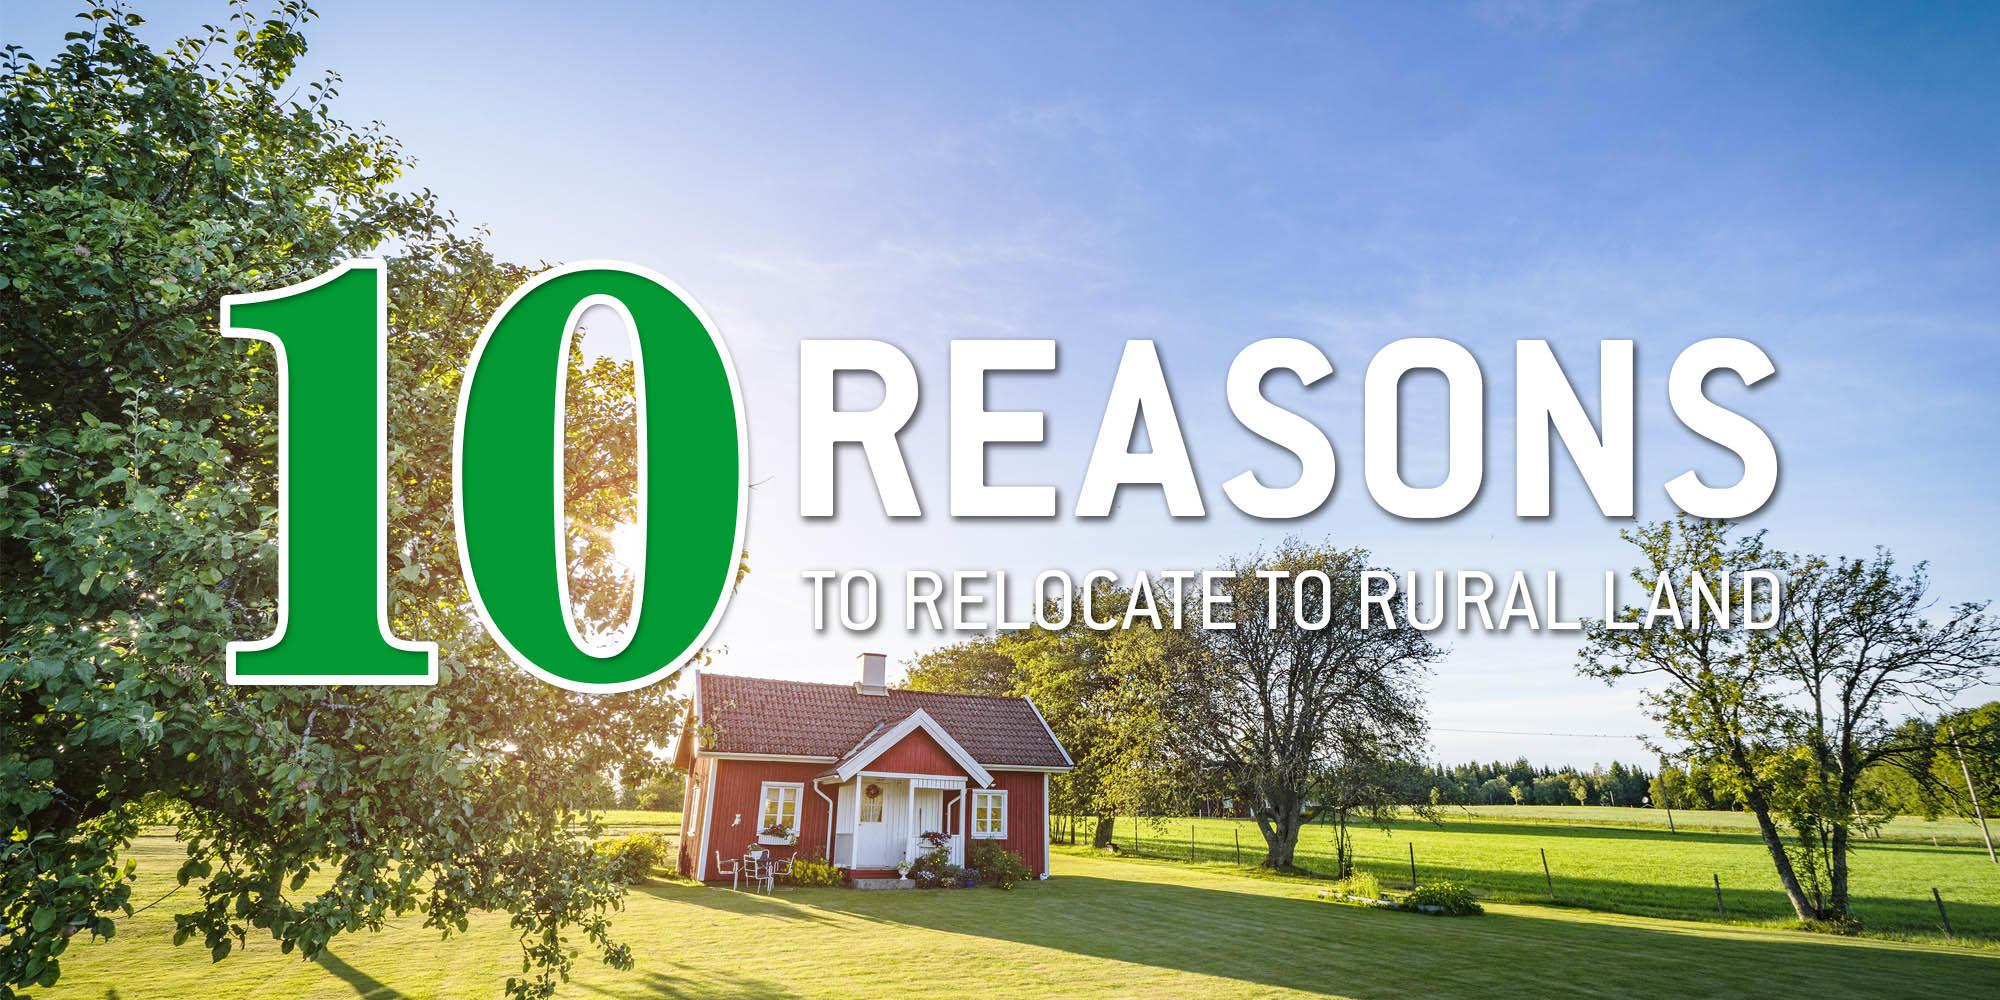 10 Reasons to Relocate to Rural Land - article image